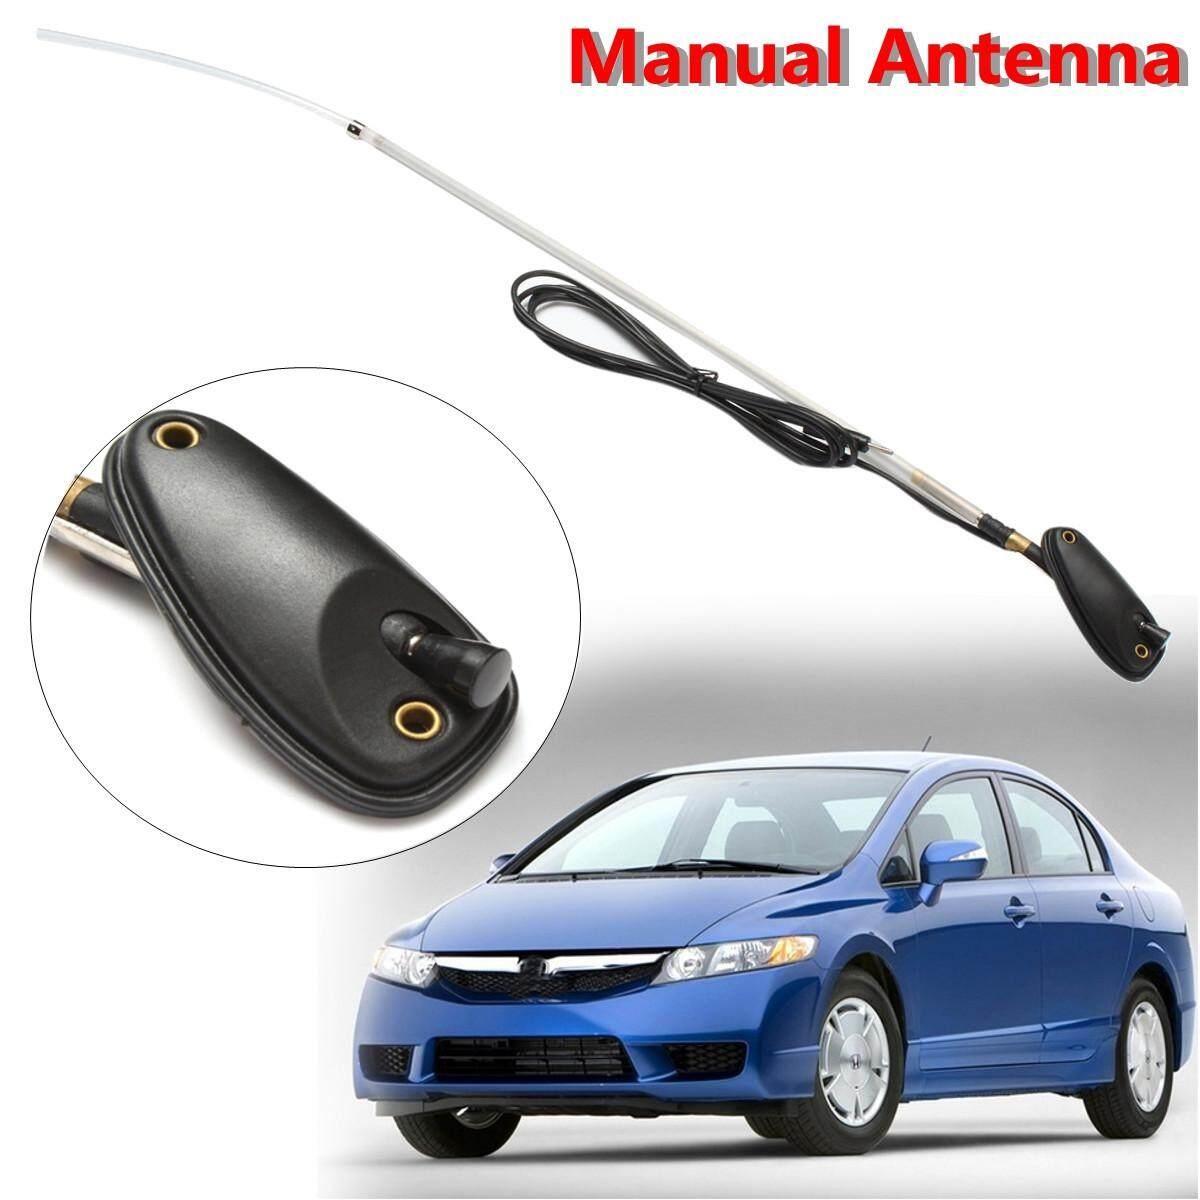 For Honda CIVIC Manual AM/FM Antenna 1992-2002 BRAND NEW